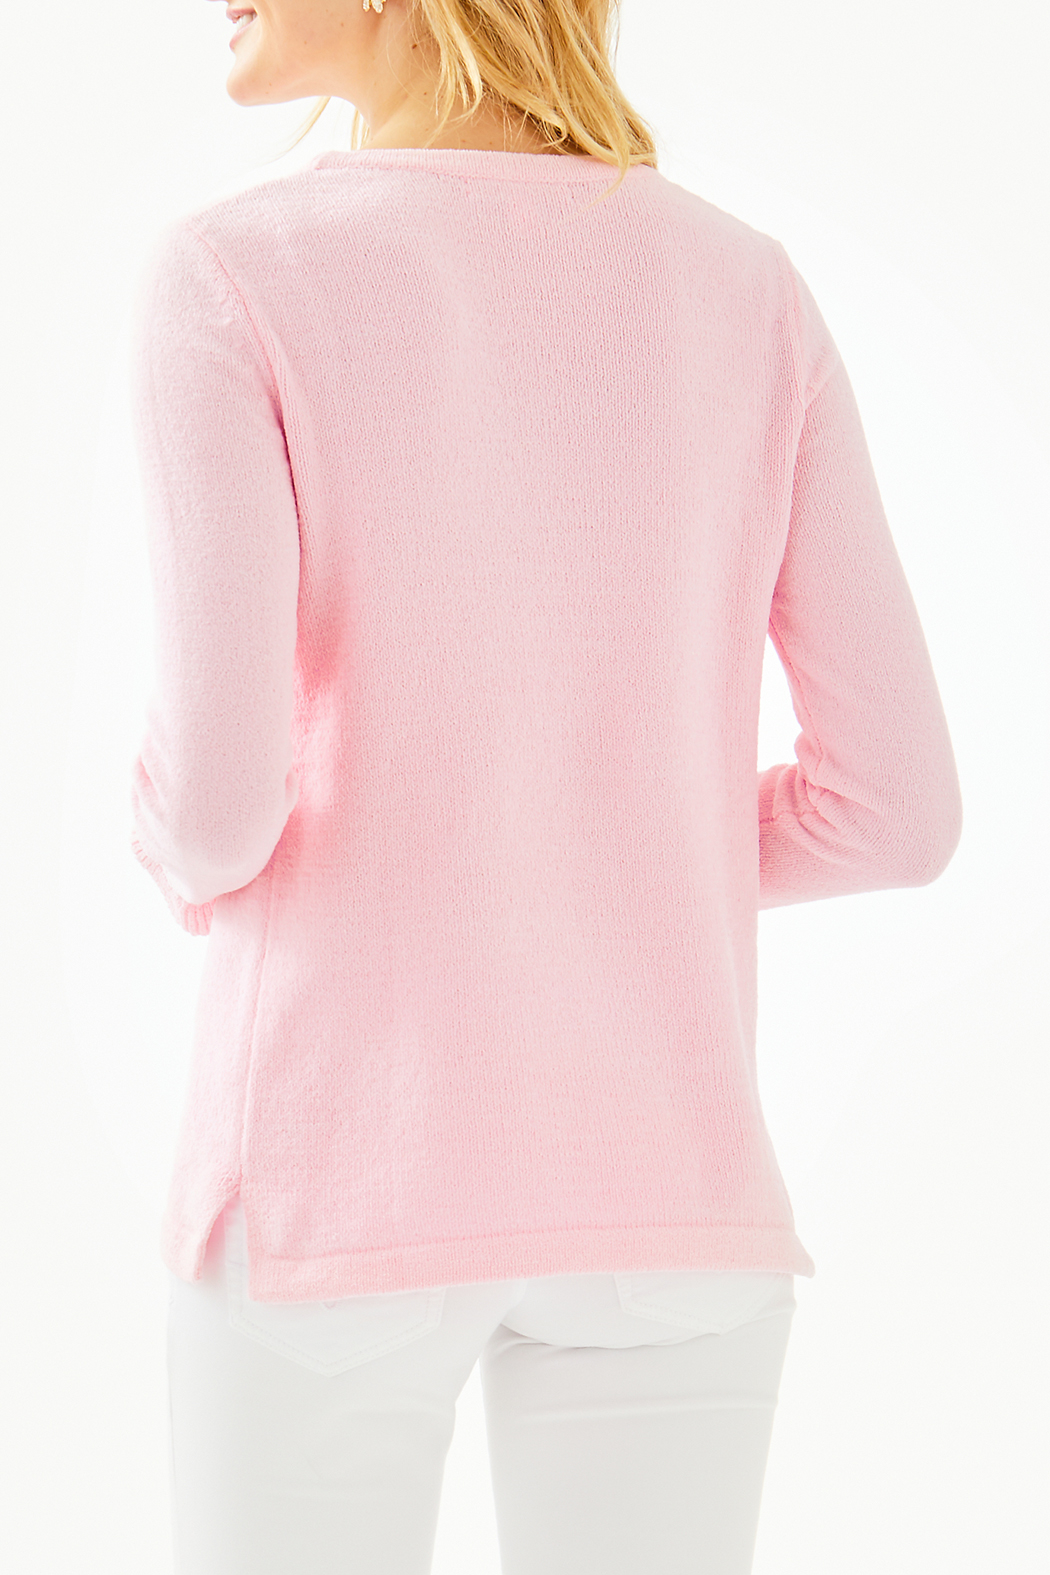 Lilly Pulitzer Calloway Chenille Sweater 004498 - Front Full Image